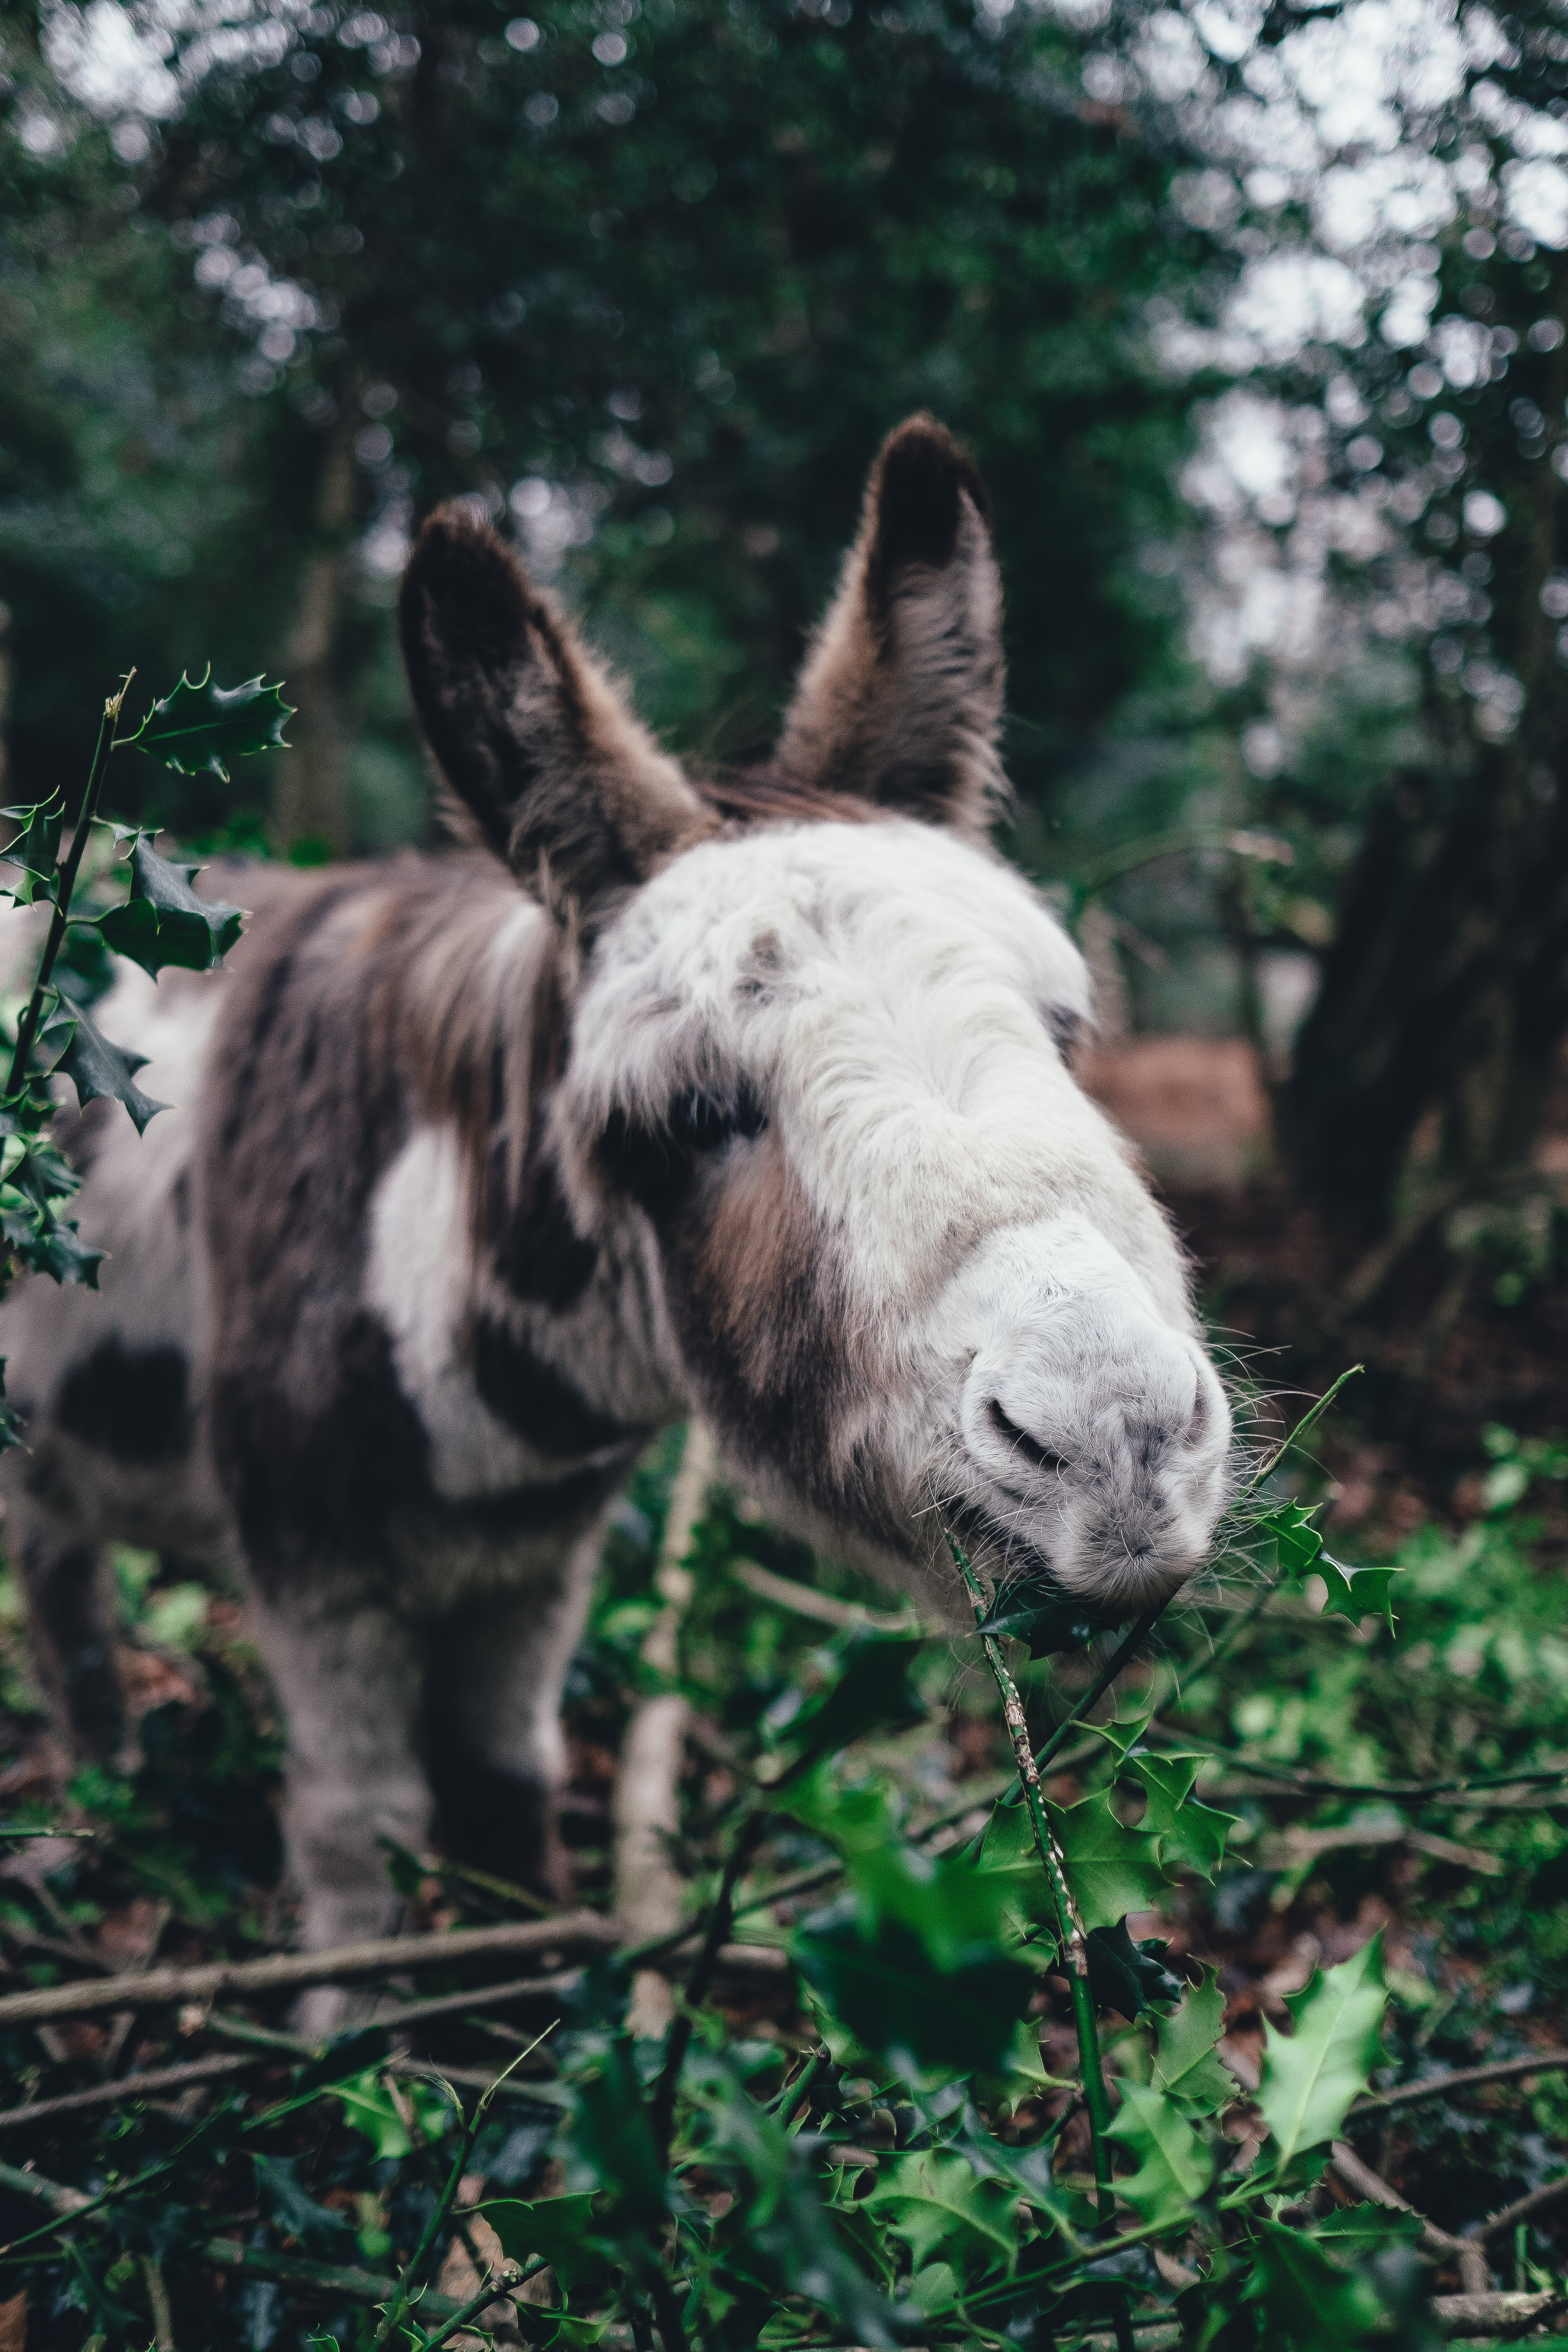 A white and brown donkey nibbling on holly leaves